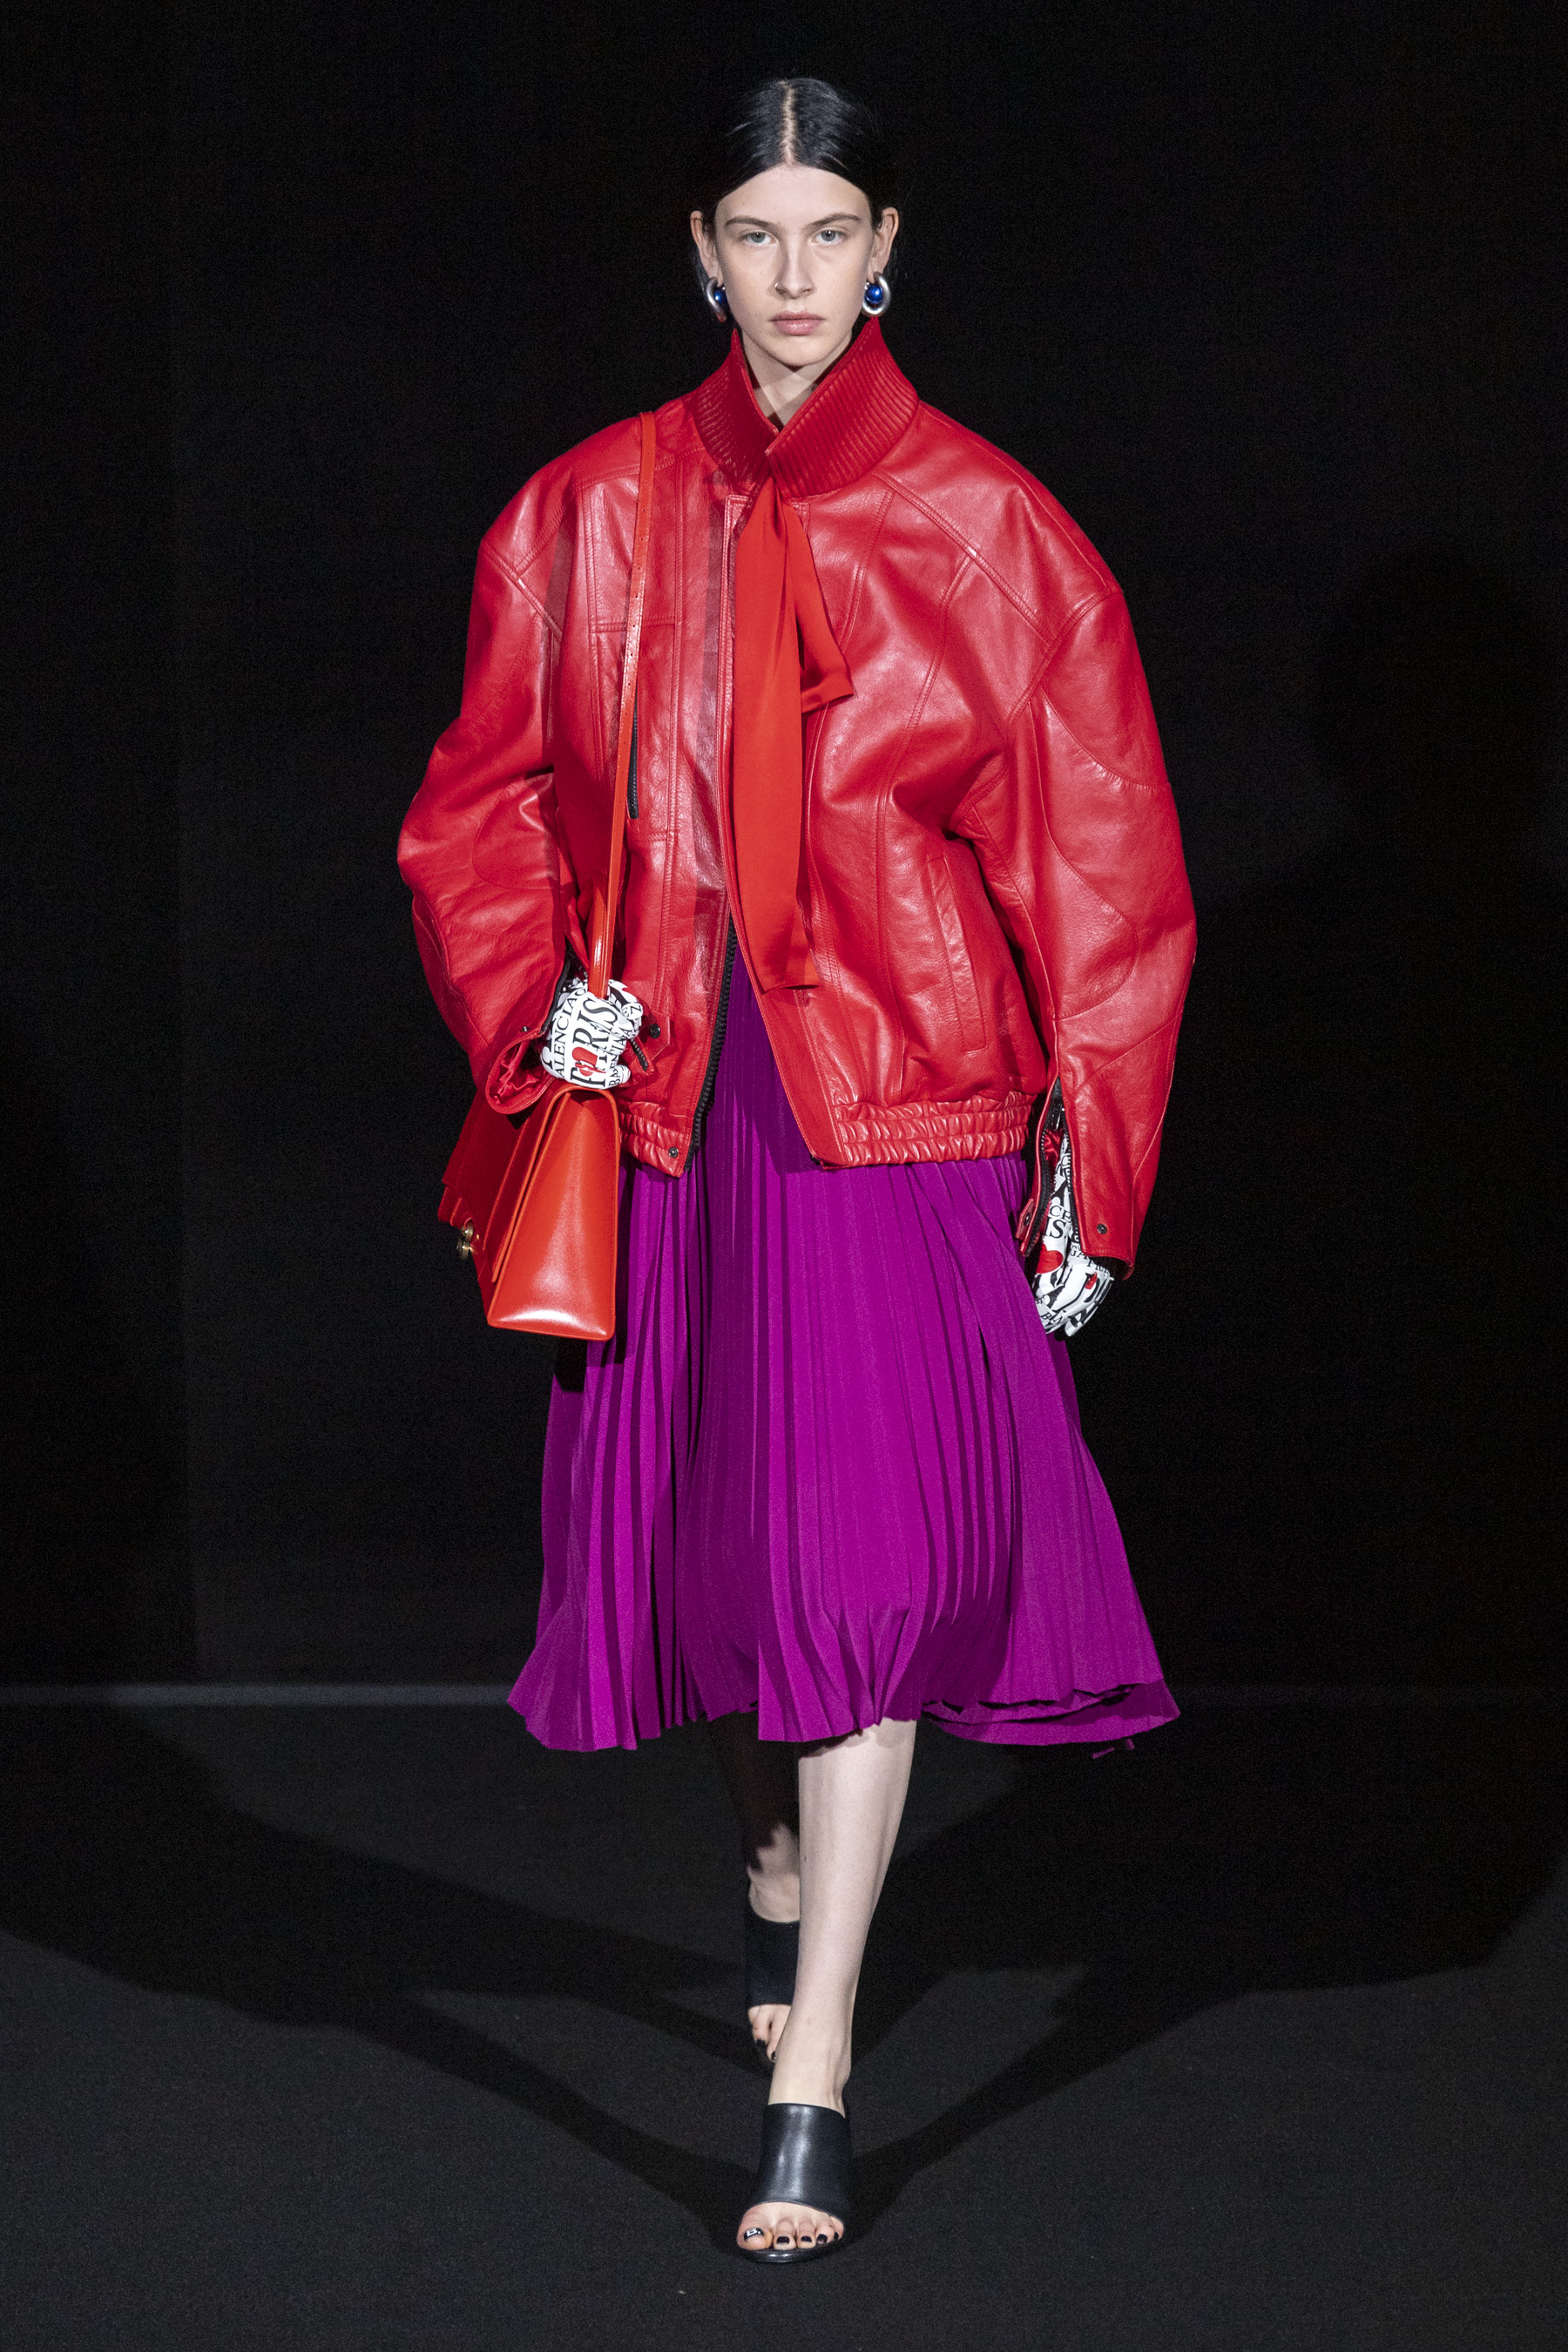 Neon Pink Pop Fall 2019 Womenswear Fashion Trend